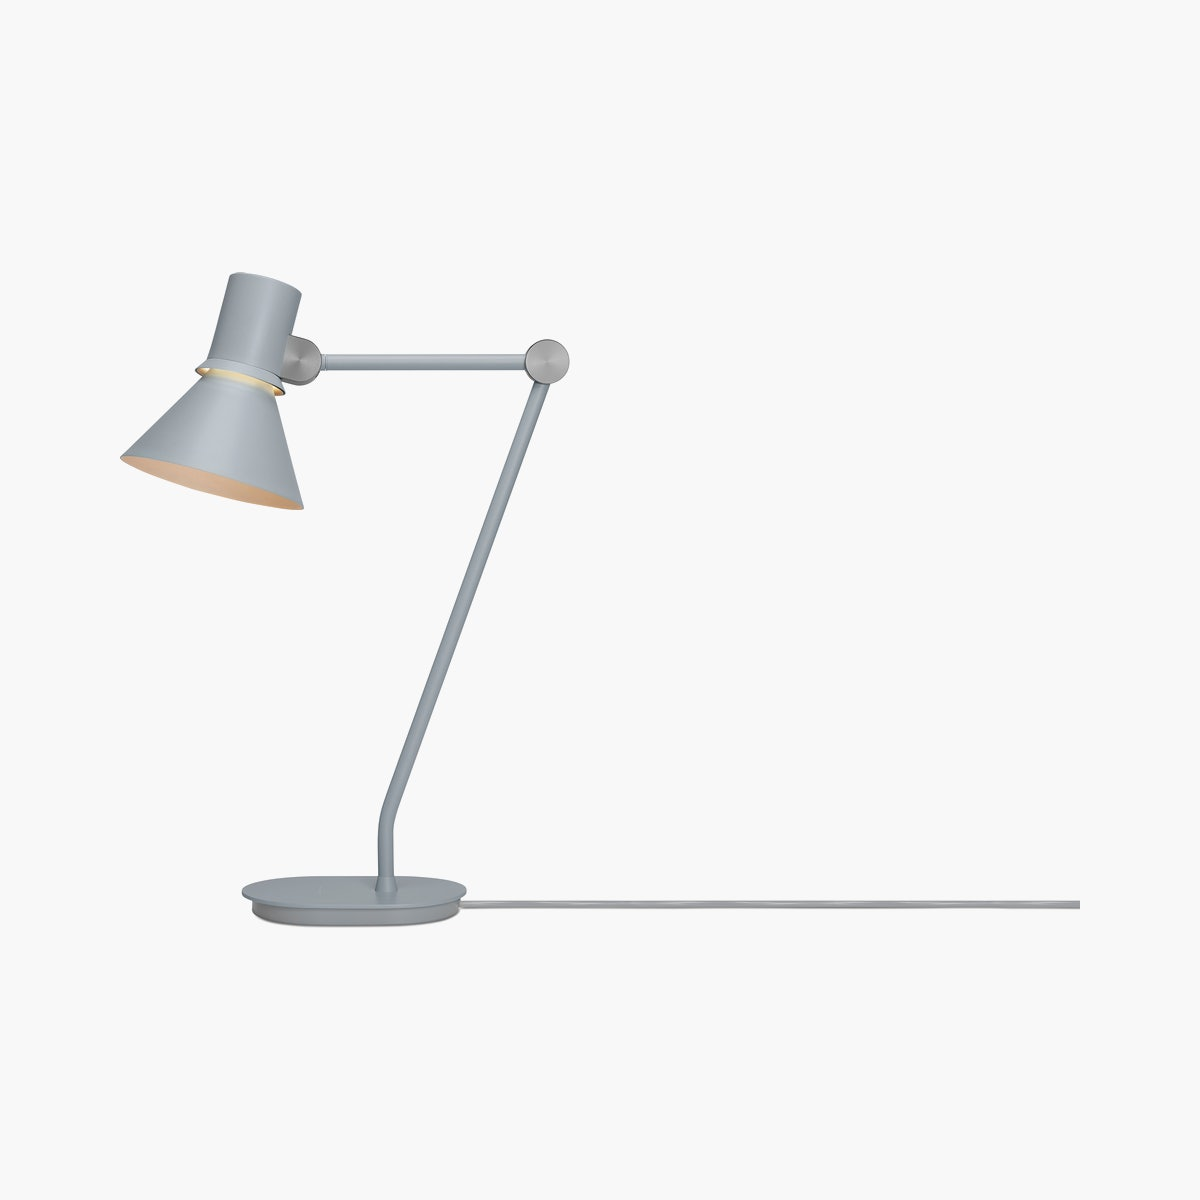 Type 80 Desk Lamp